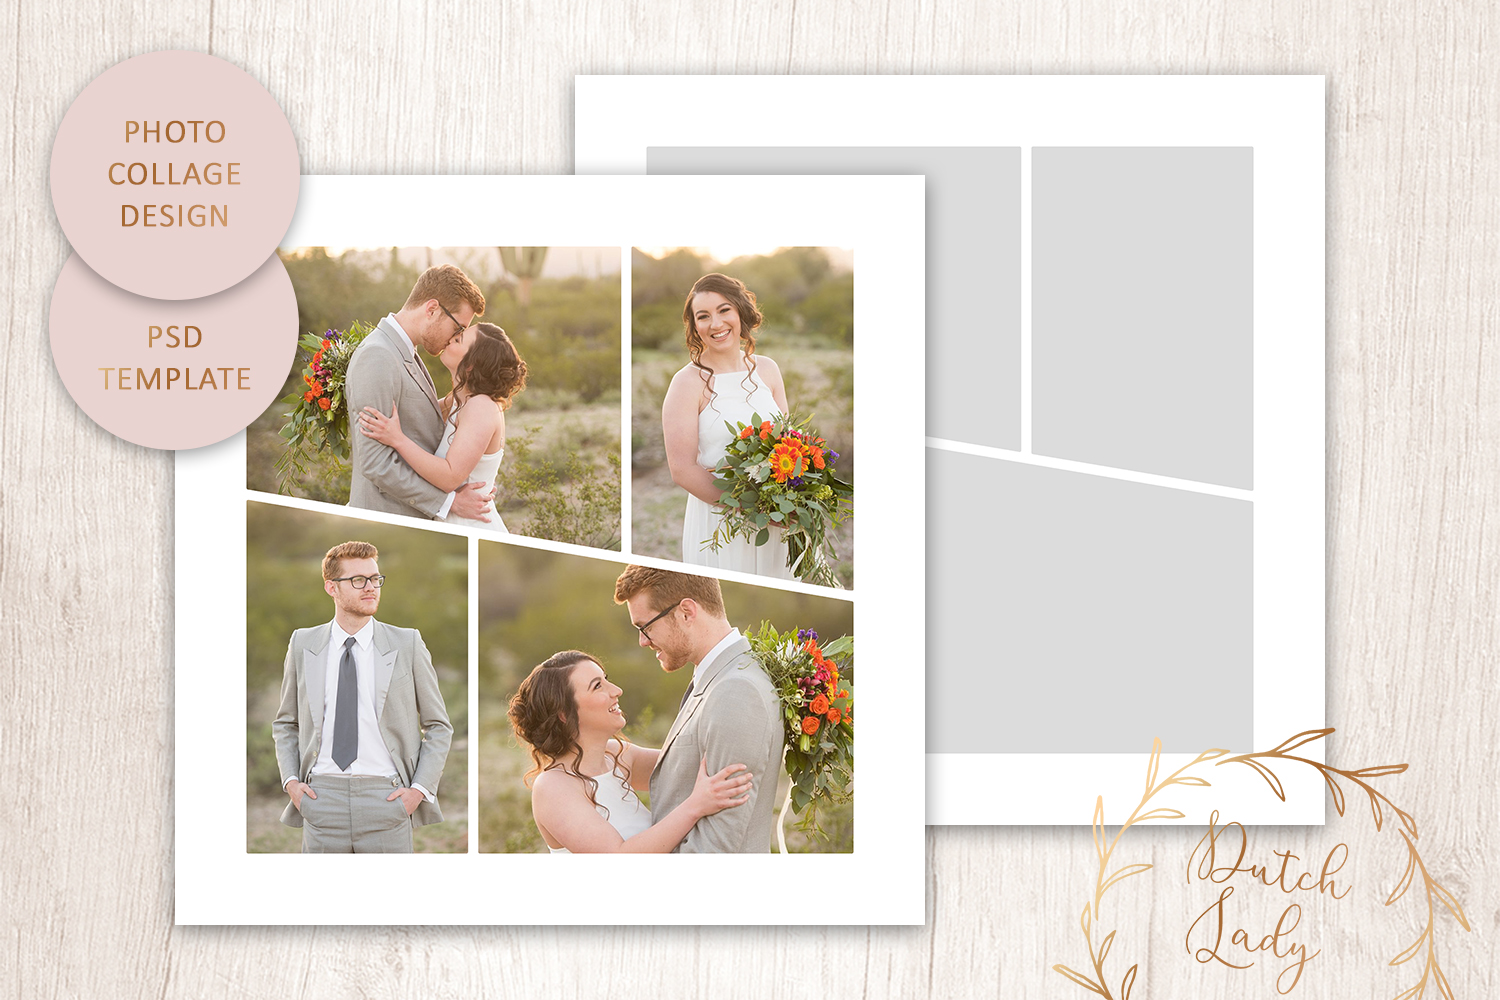 PSD Photo & Image Collage Template #5 example image 1